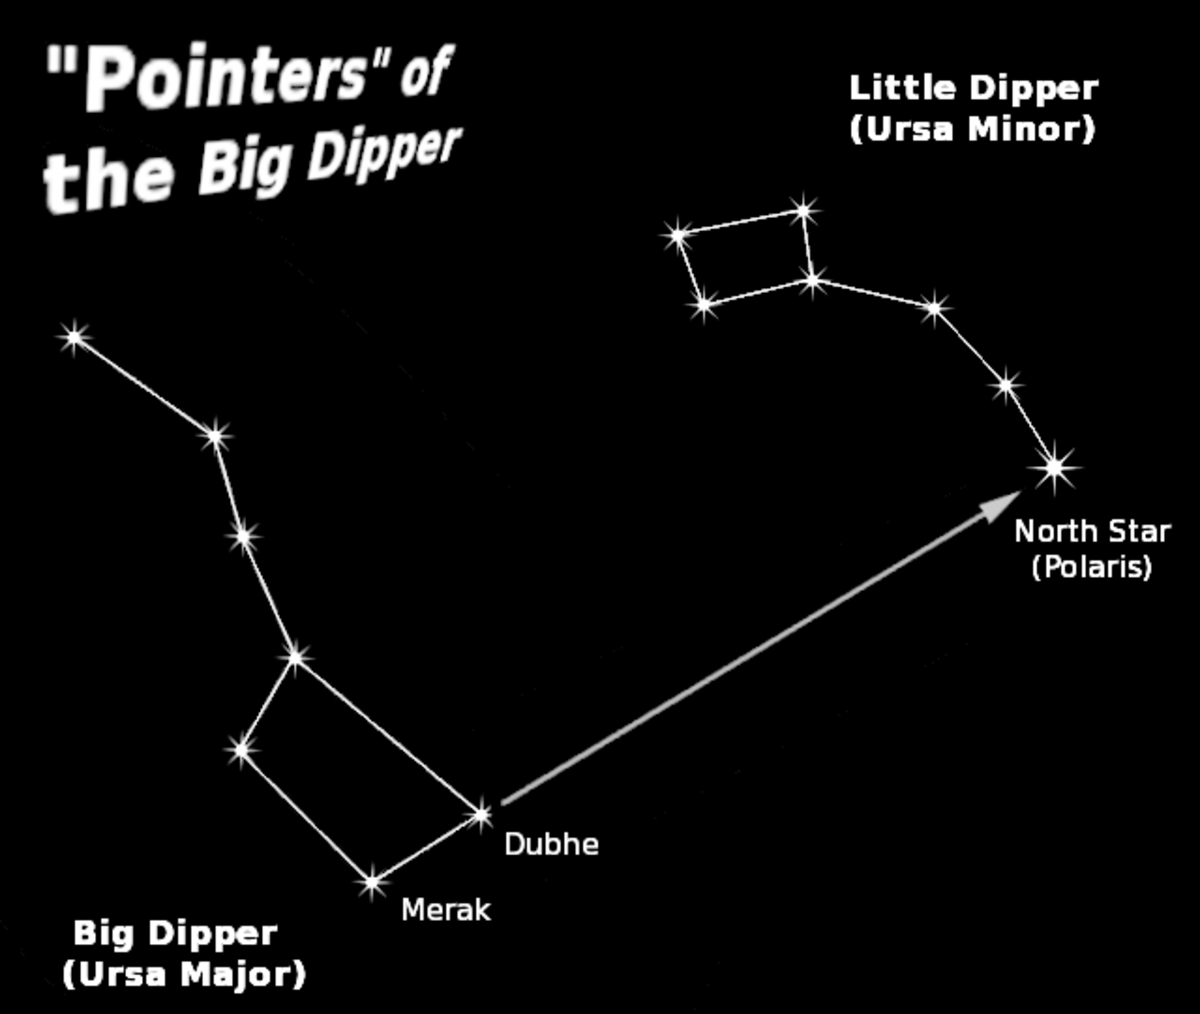 Using the Big Dipper to locate Polaris, the north star.